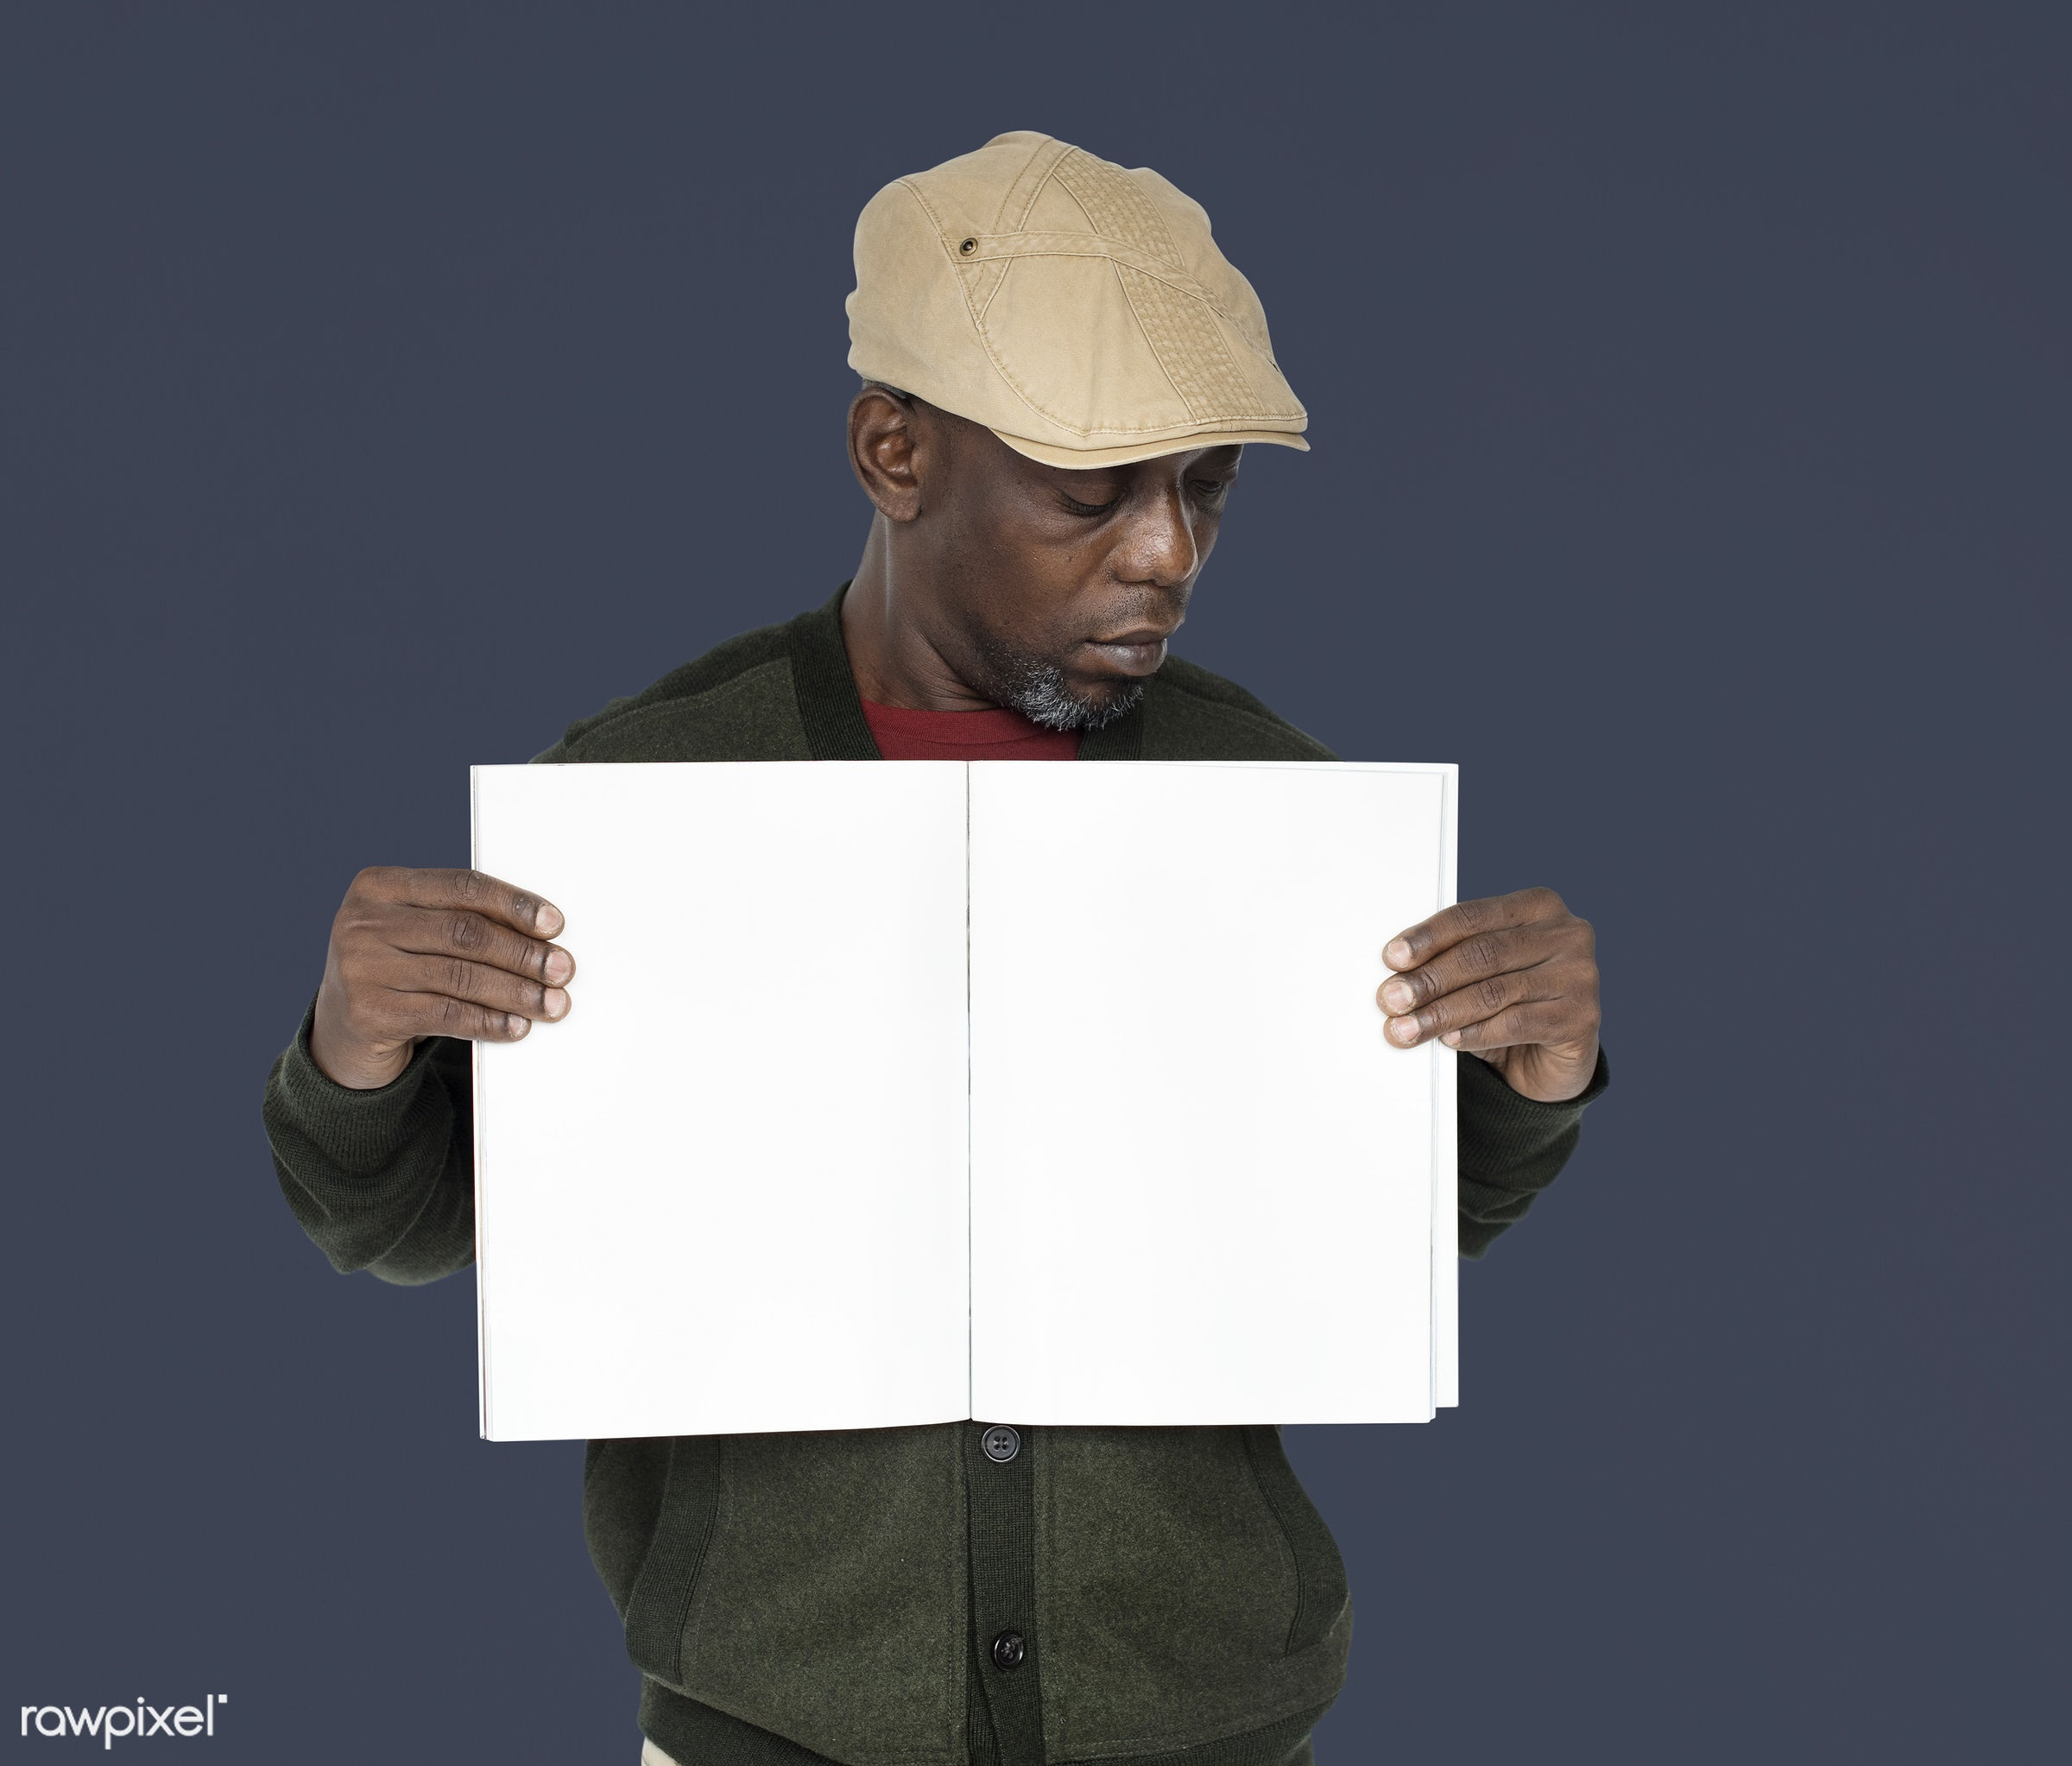 expression, studio, model, person, holding, copyspace, paper, advertising, people, looking, style, casual, empty, showing,...